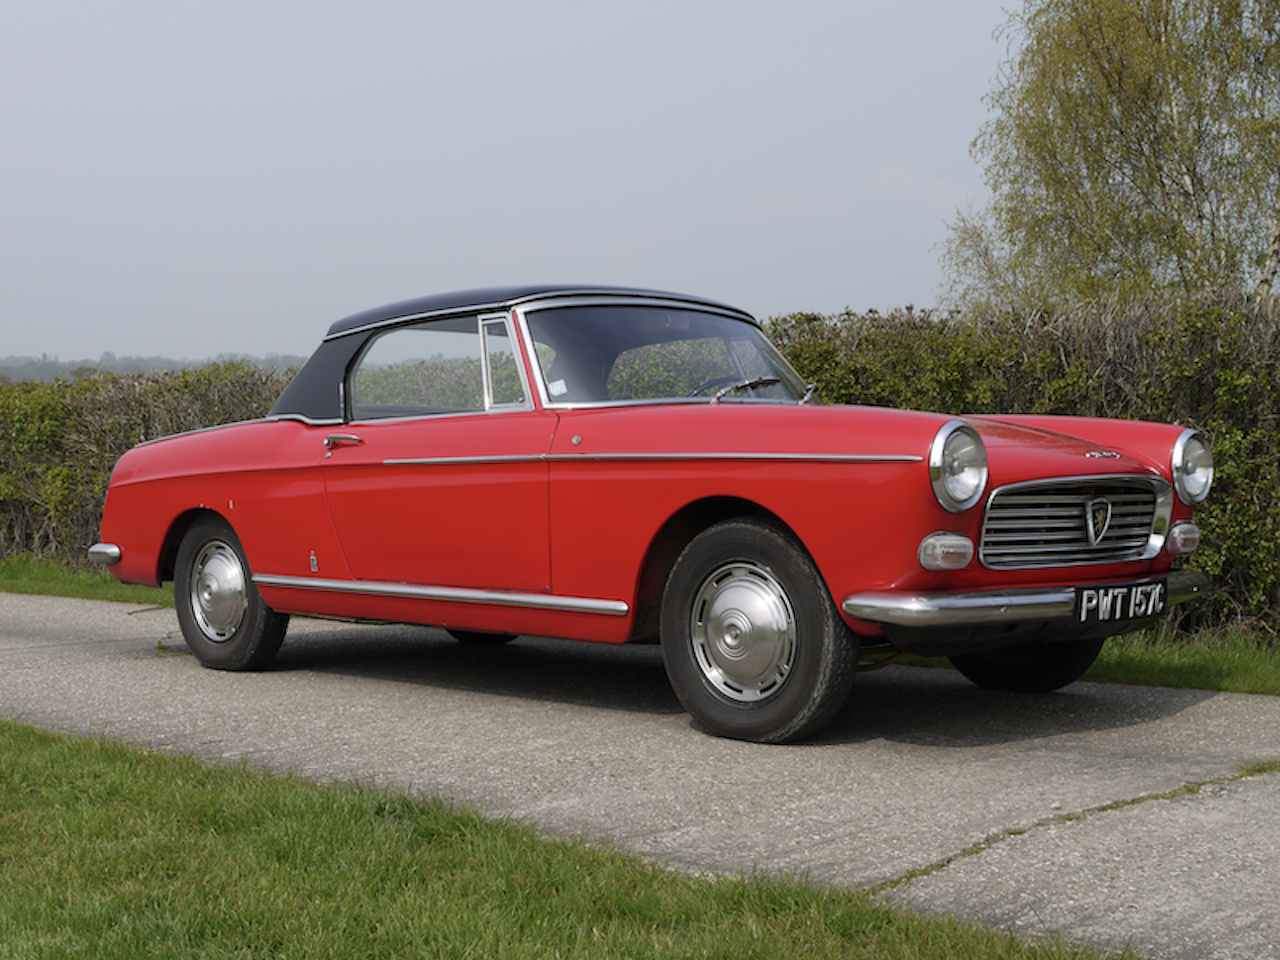 1965 Peugeot 404 Cabriolet Injection For Sale (picture 1 of 6)